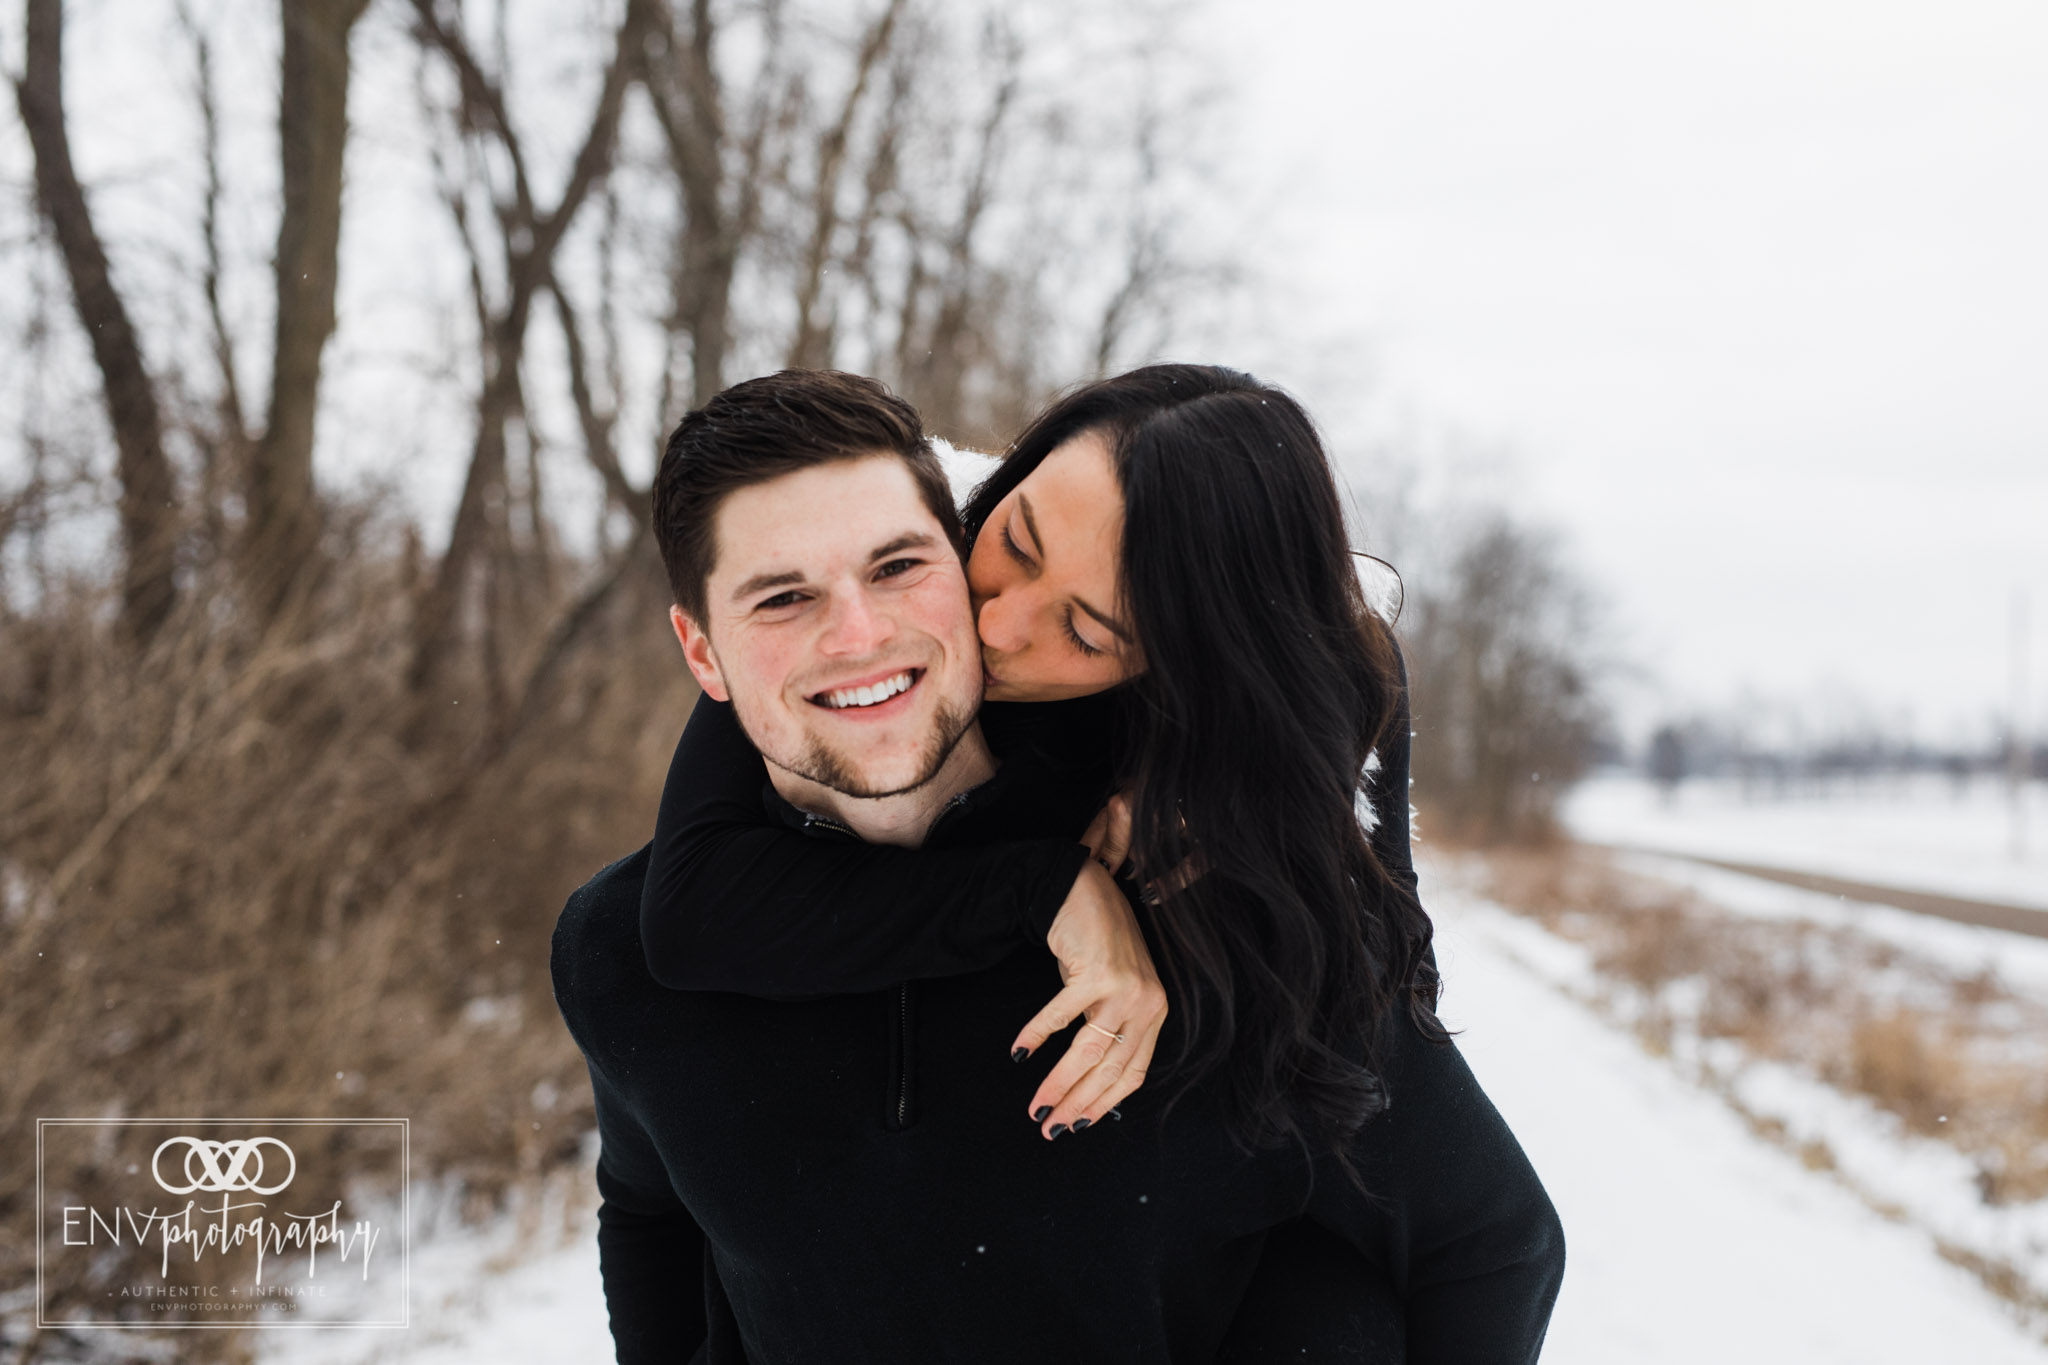 columbus ohio mount vernon ohio winter snowy family engagement photography (3).jpg